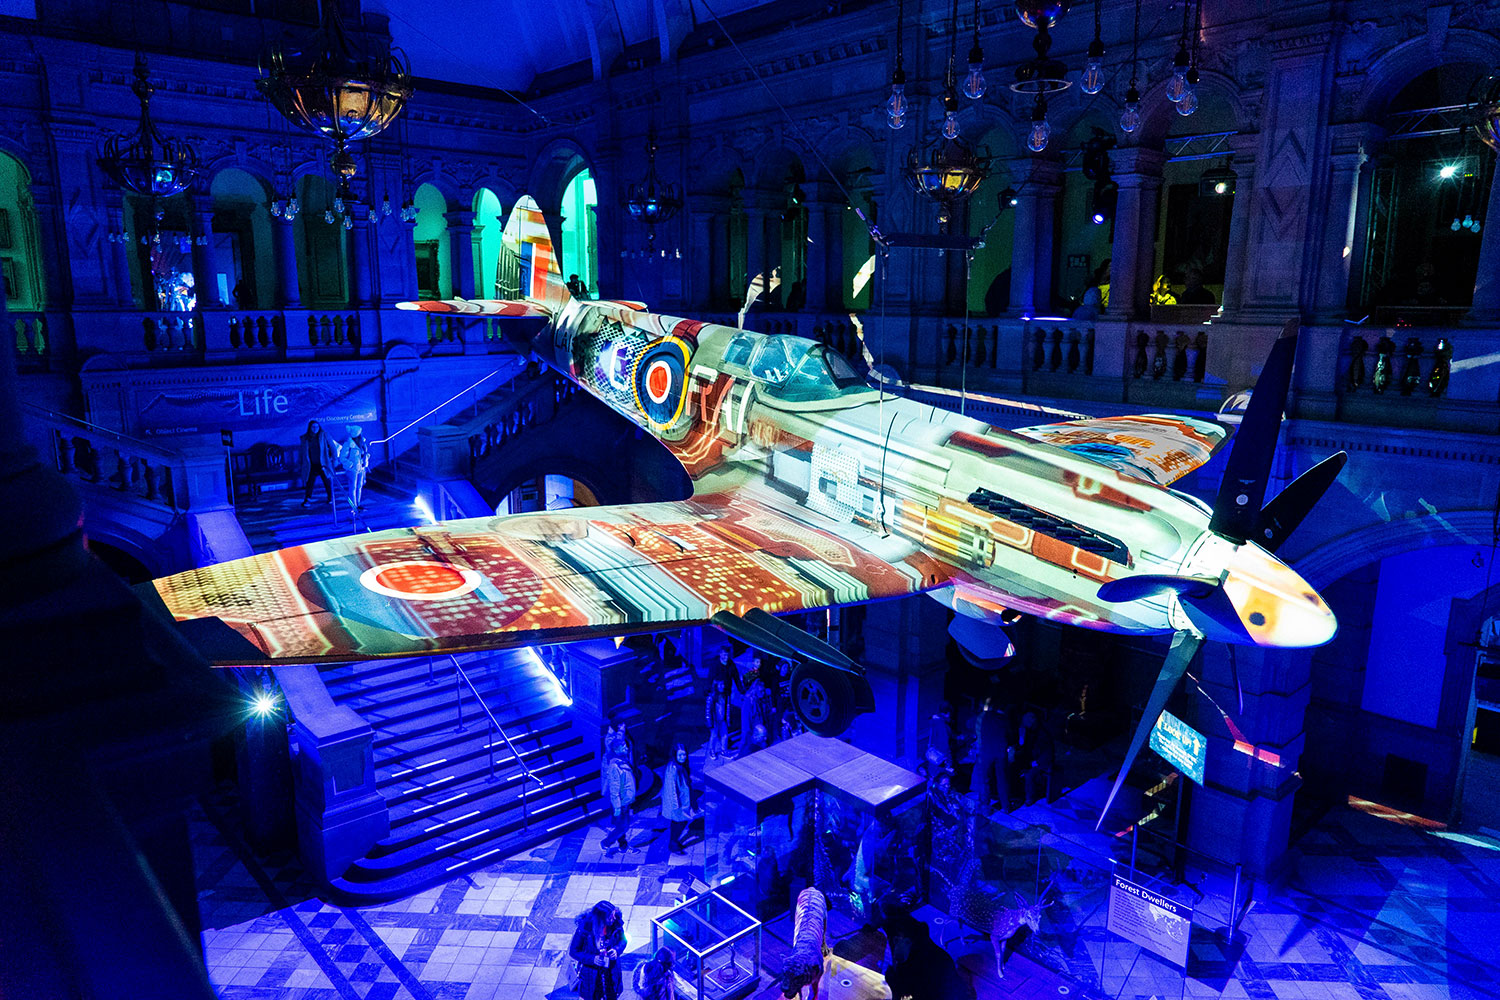 Spitfire Projection Mapping at Kelvin Grove Art Gallery Glasgow, Projection mapping